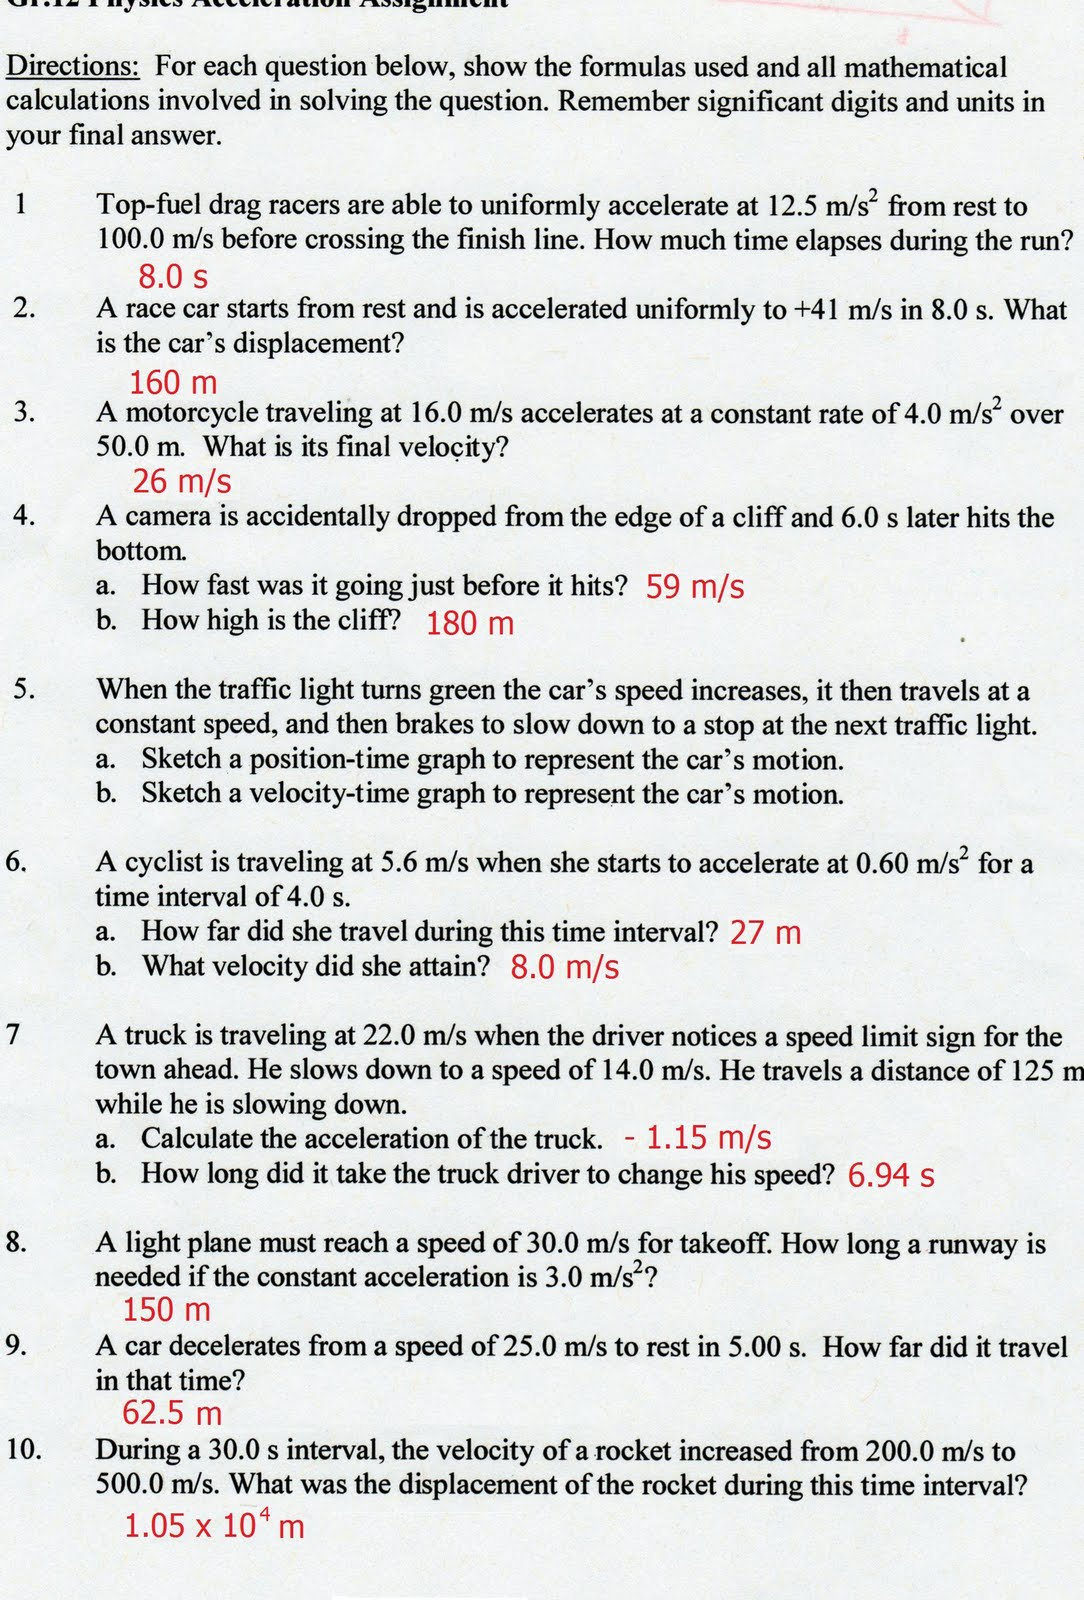 Worksheets Speed Velocity And Acceleration Worksheet Answers physics12fall2010 so im just reposting the worksheet with answers for those who might not have seen on amys previous post followed by question 5